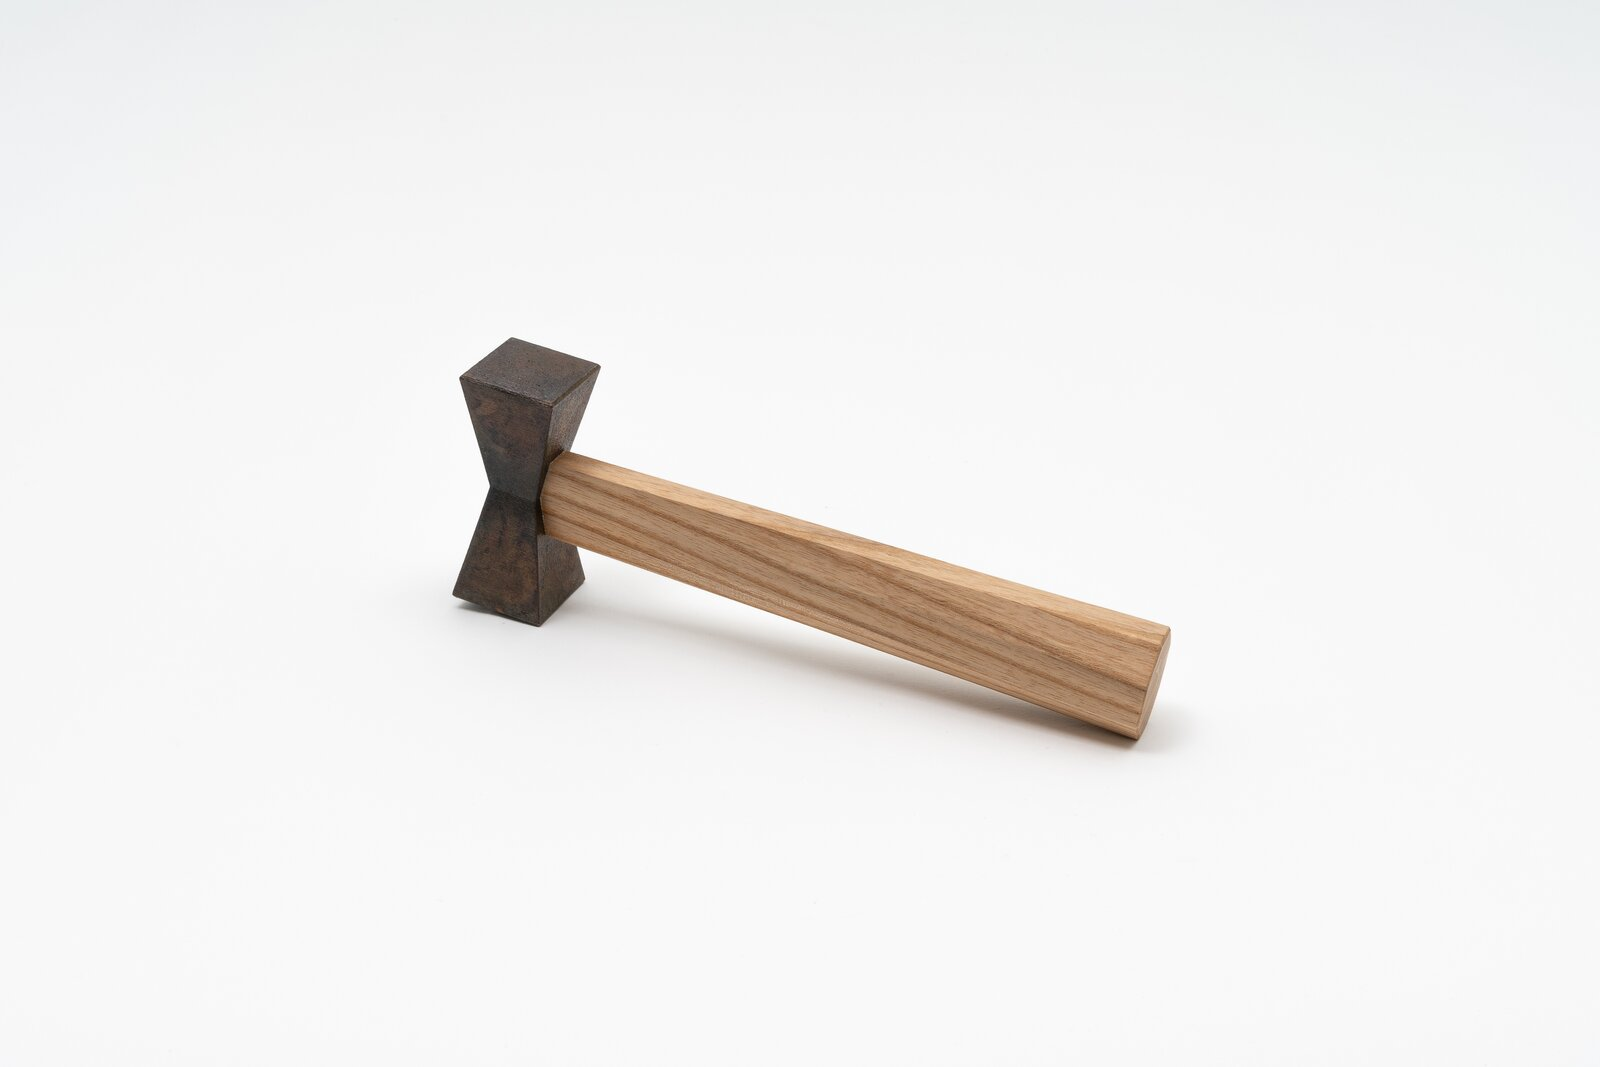 An alternative hammer design by Kazuki Guzmán  Photo 3 of 7 in The Dwell 24: Kazuki Guzmán